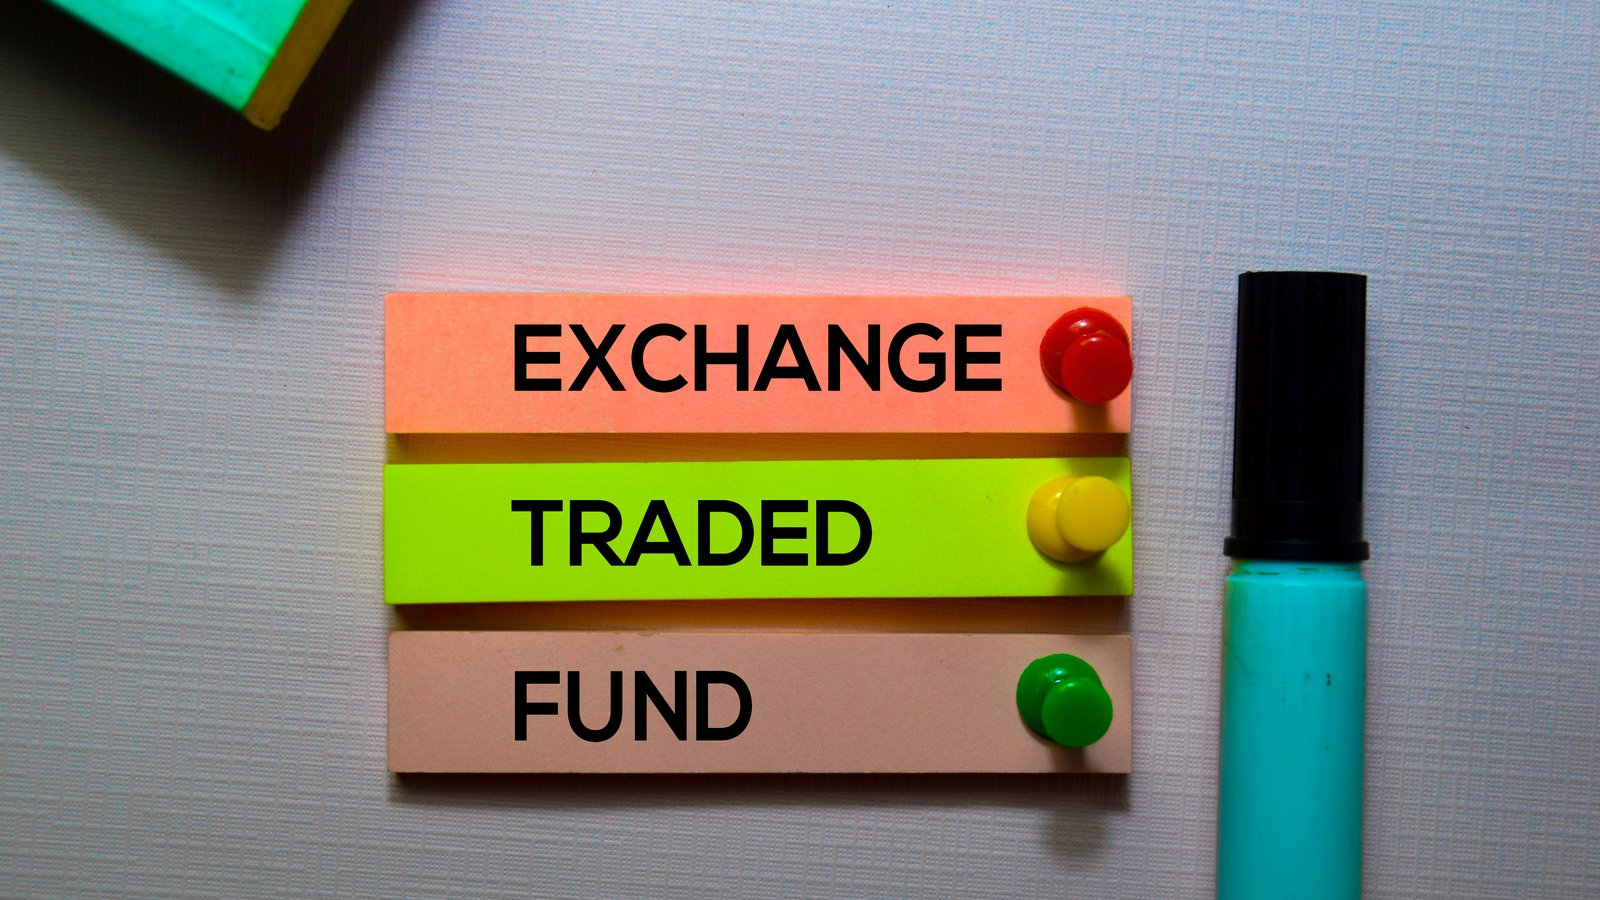 5 Blockchain ETFs to Buy If You're Excited About Cryptocurrency